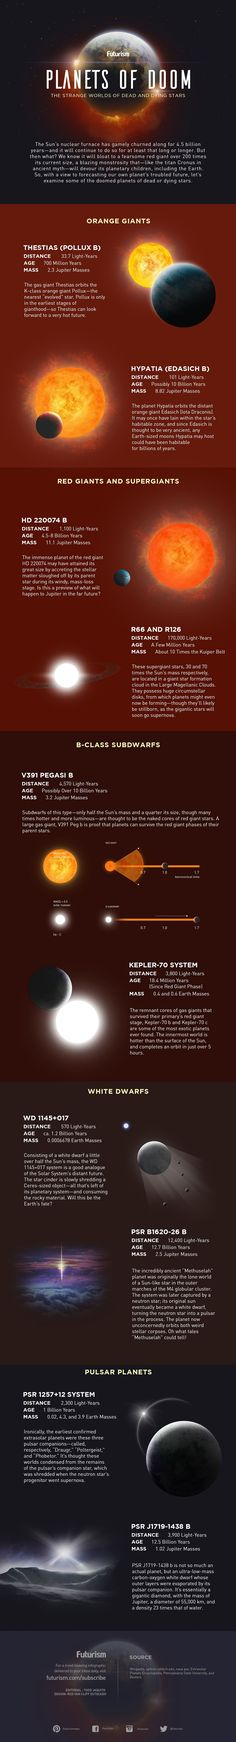 Planets Of Doom: The Strange Worlds Of Dead And Dying Stars #Infographic #Space